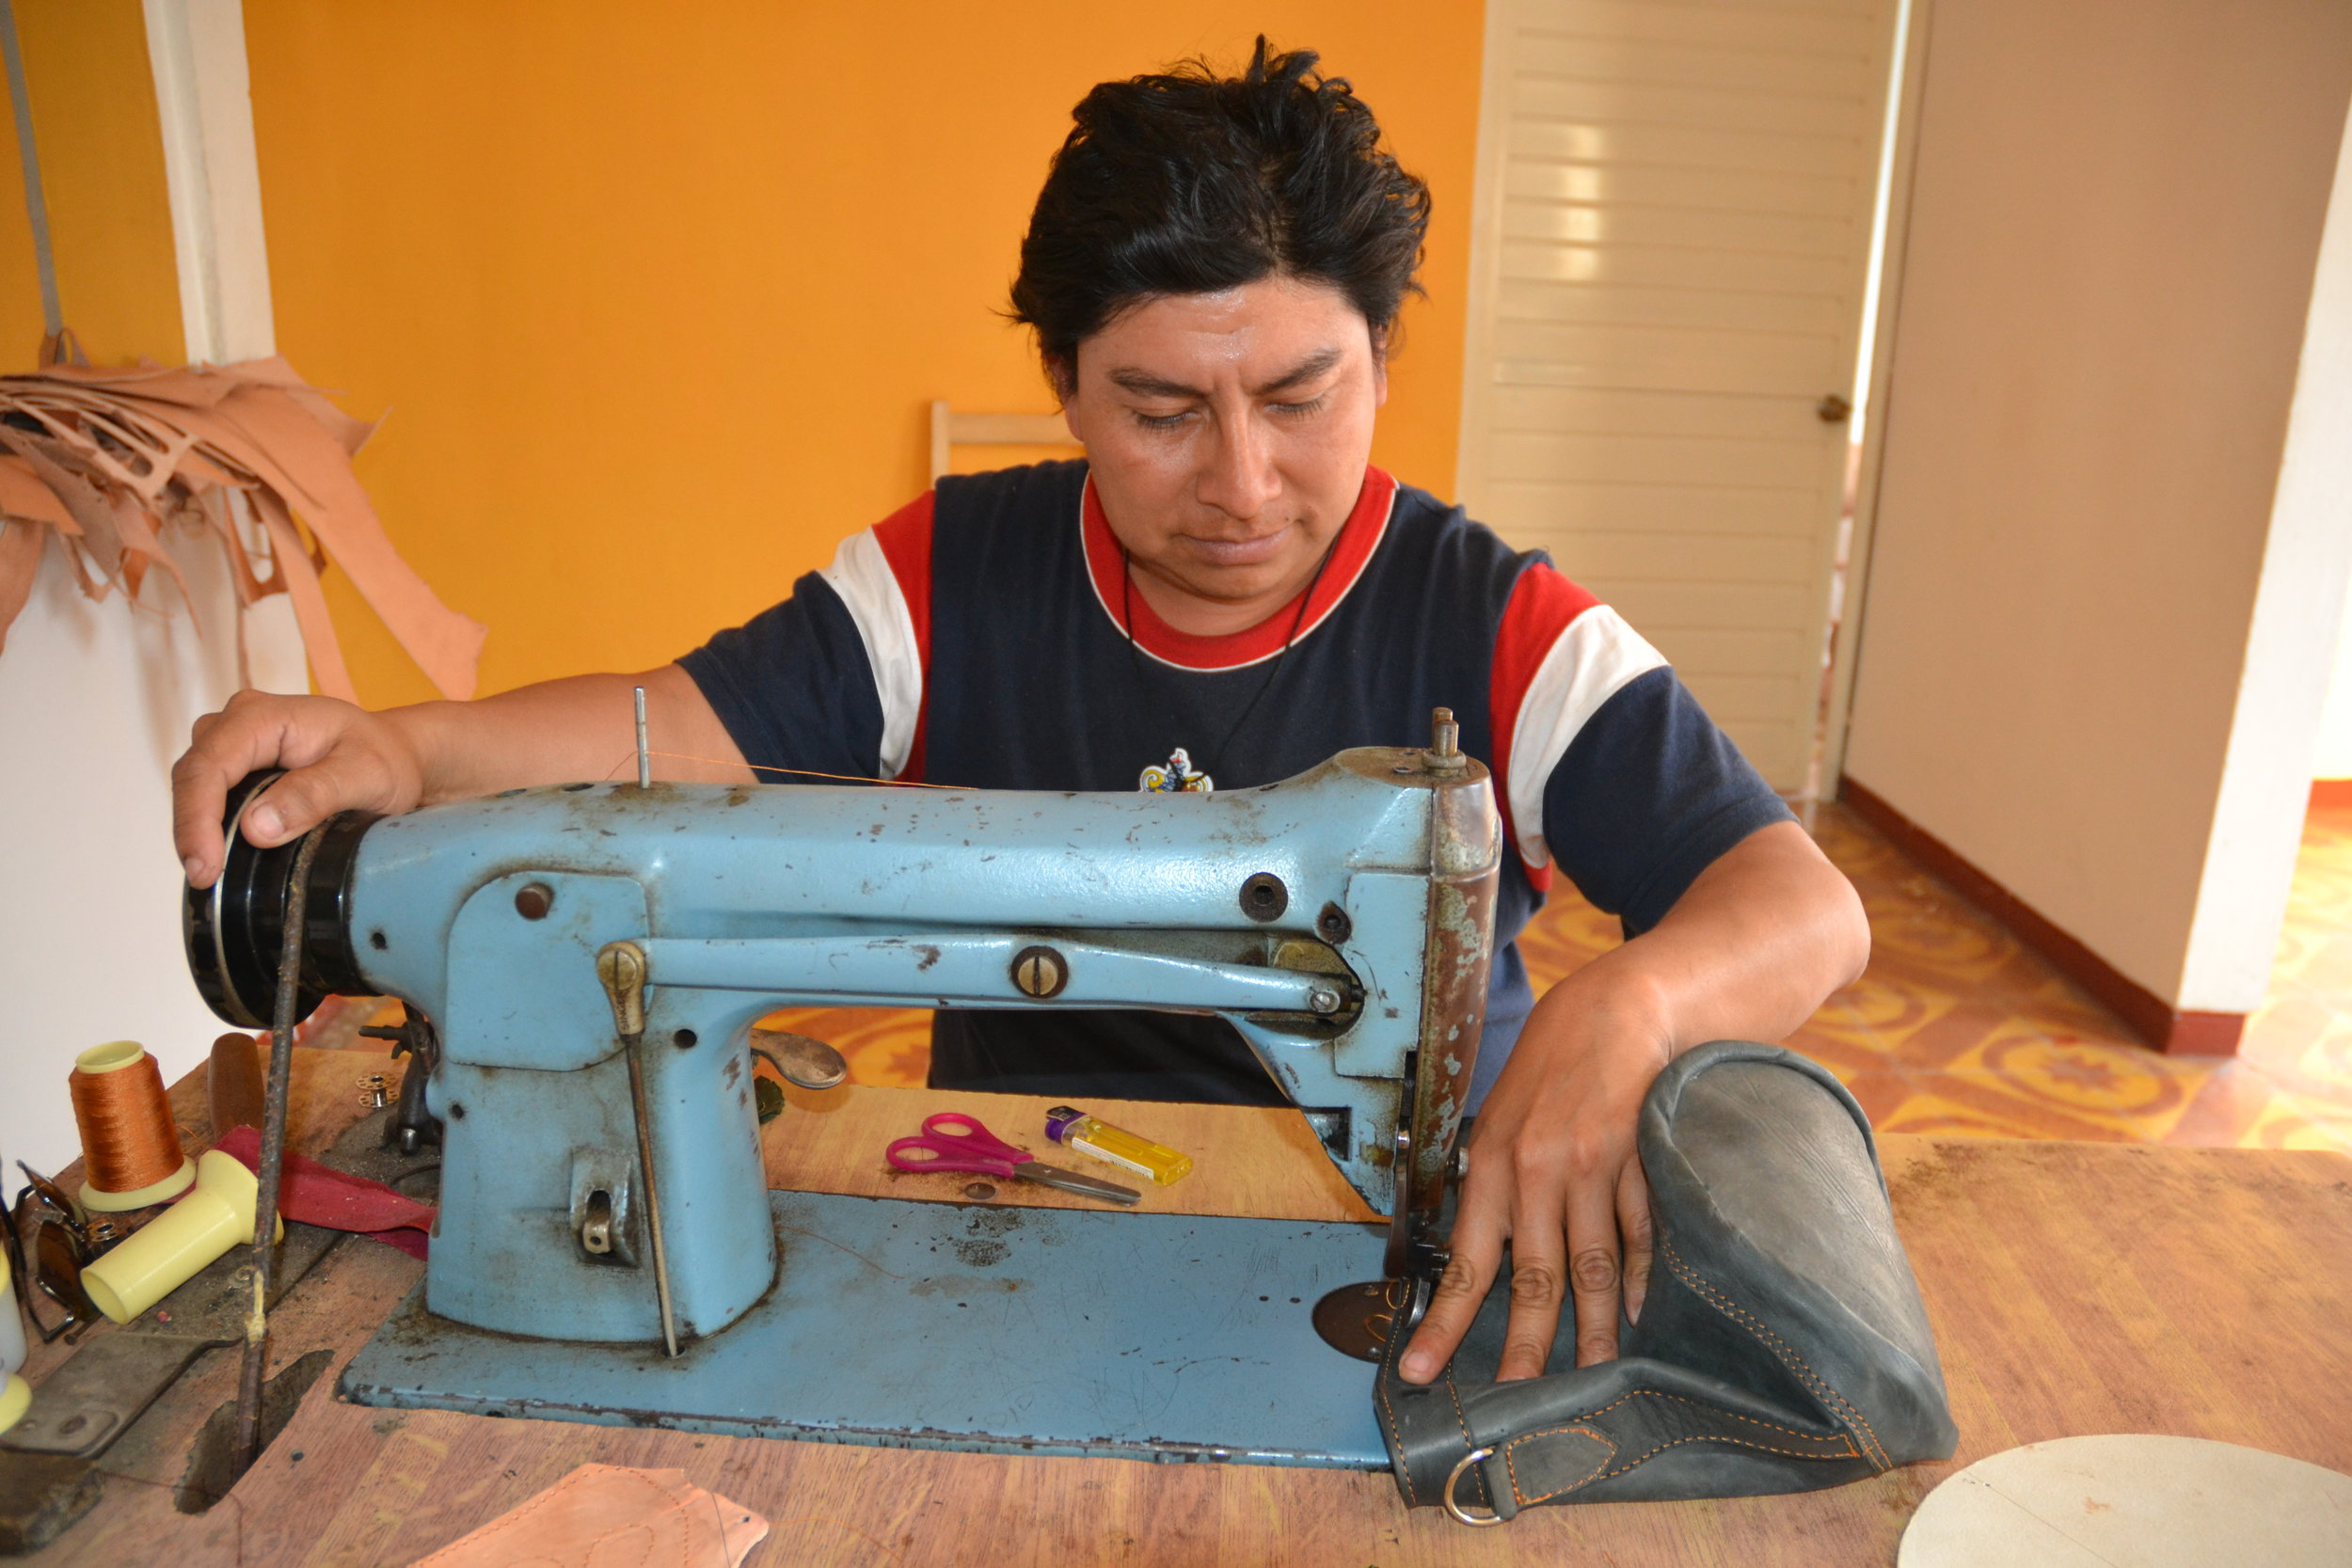 Juan Manuel is a musician by night and a leather worker by day. He plays 6 instruments and one at the workshop (the sewing machine!). He is Caralampio´s son and although he has been learning from his dad his whole life, it wasn't until recently that he started calling this his job.